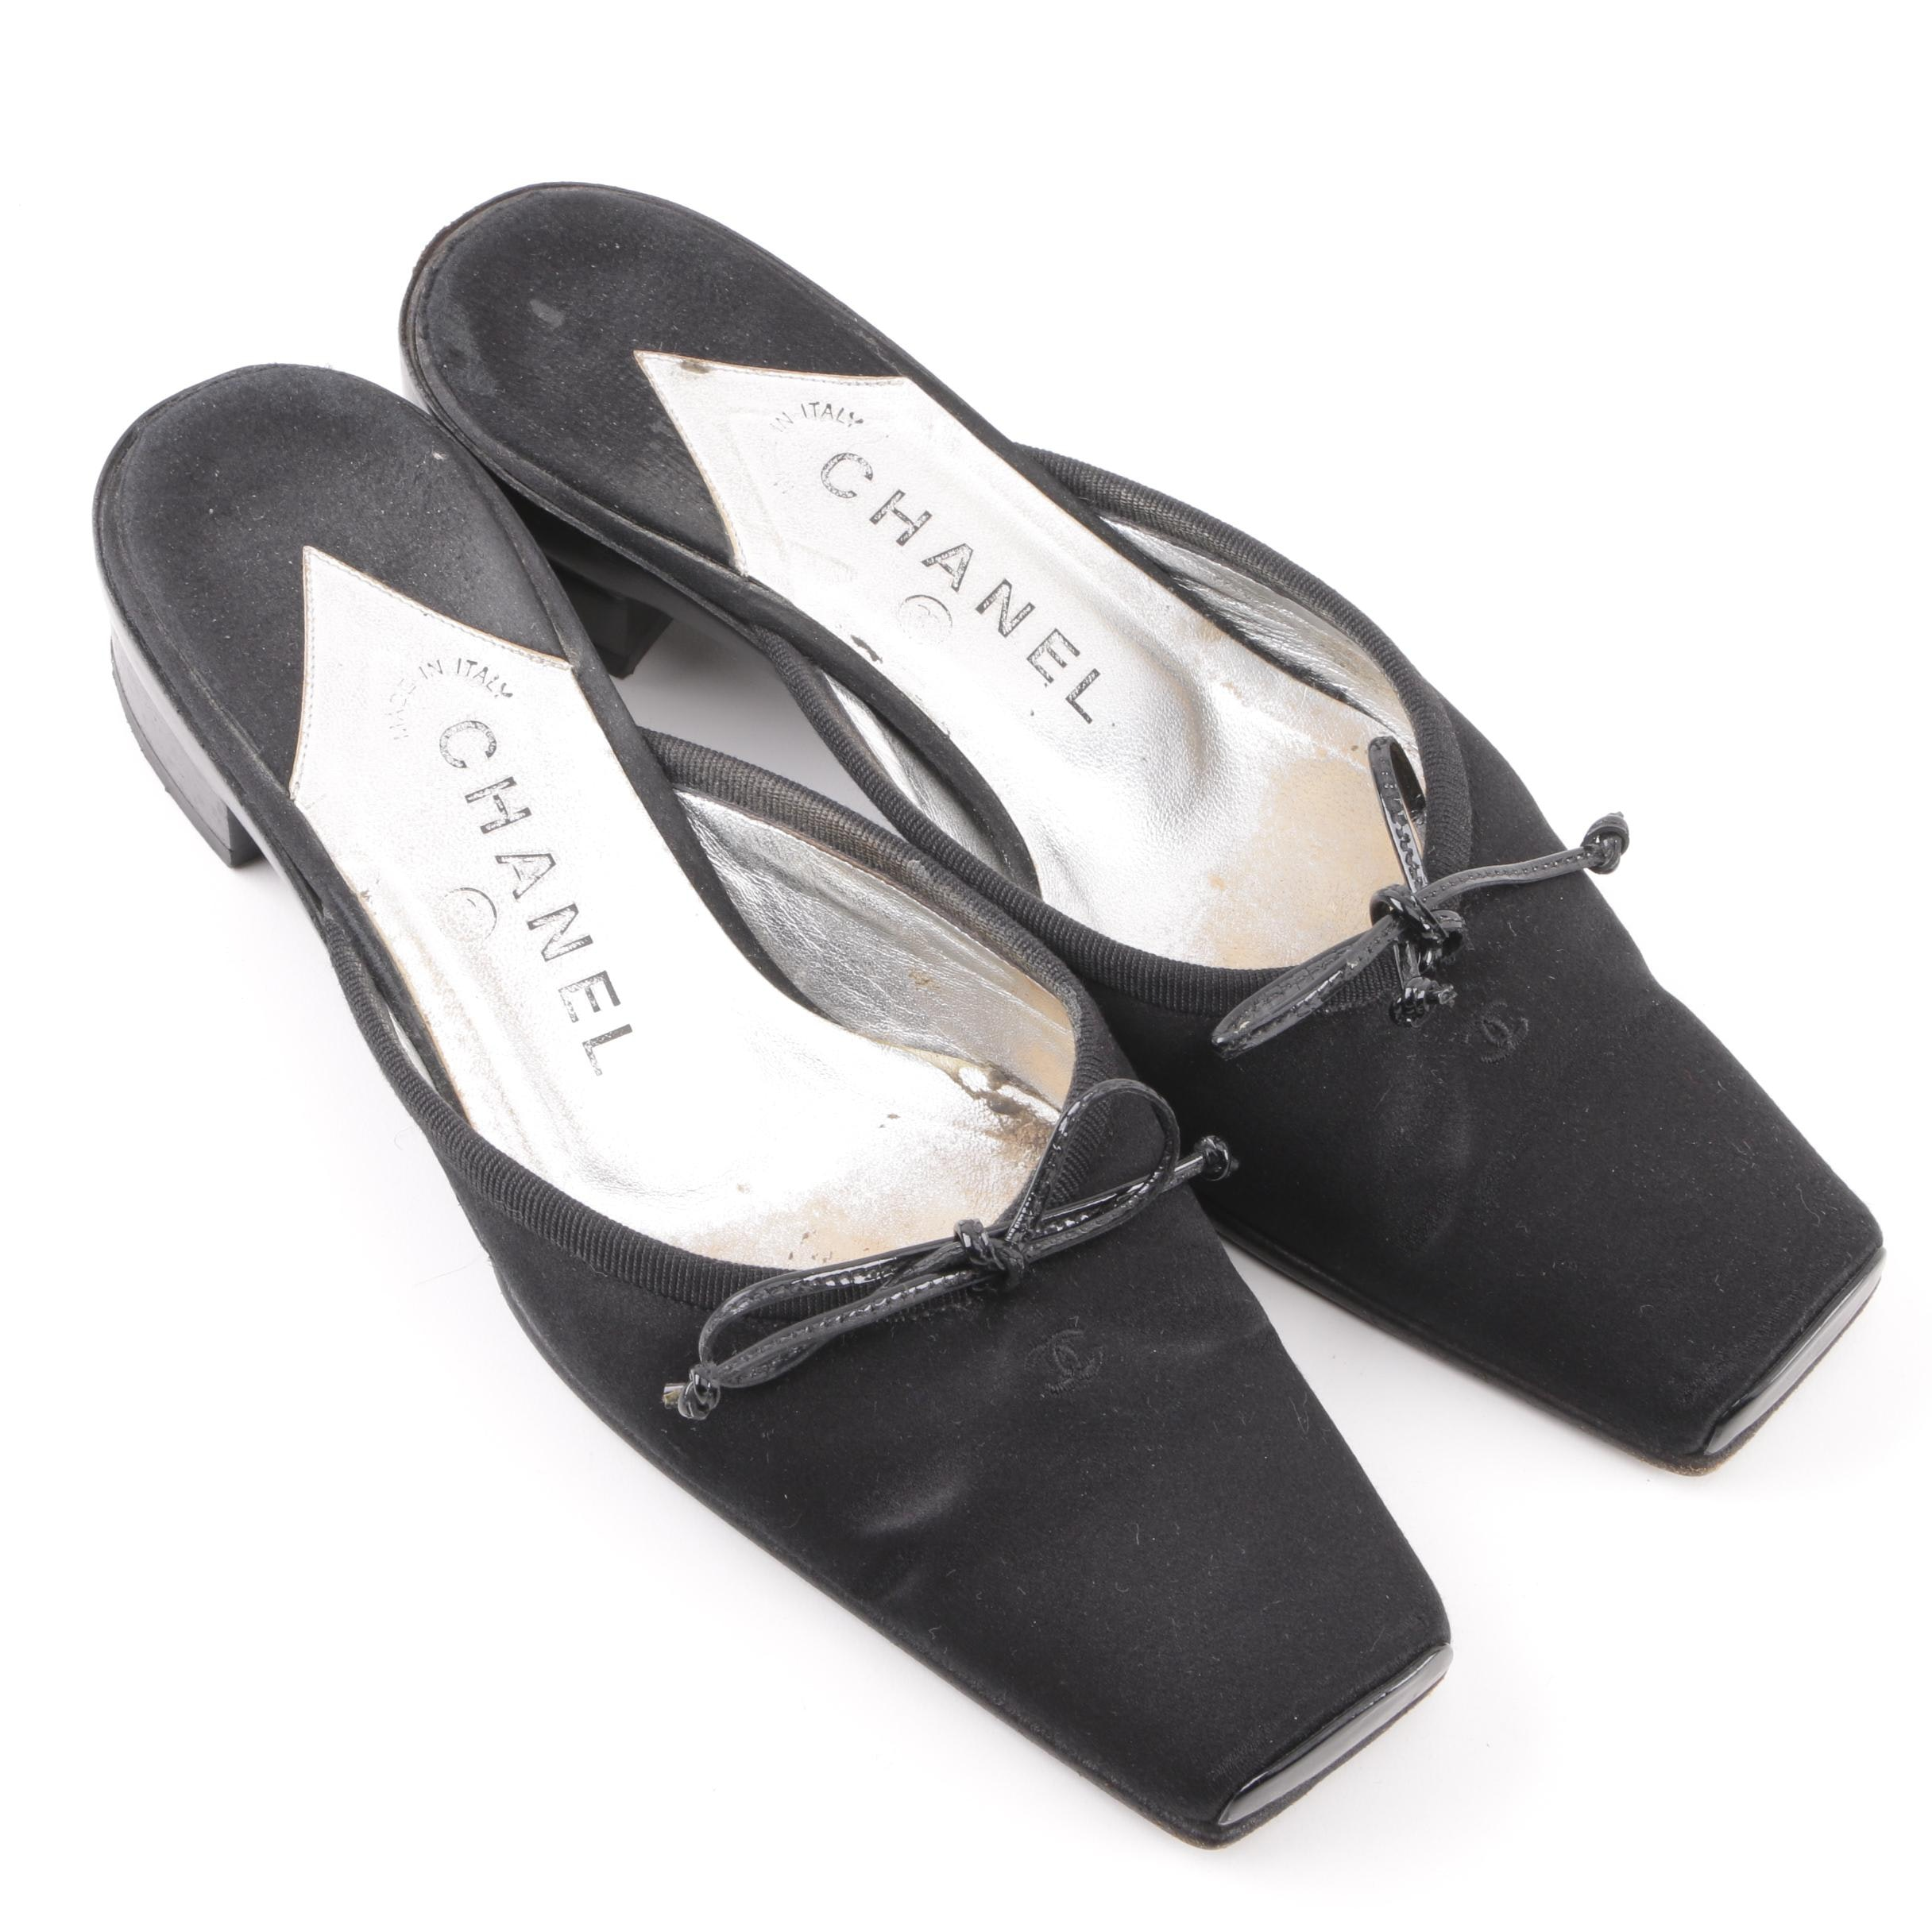 Chanel Black Satin Bow Tie Mules